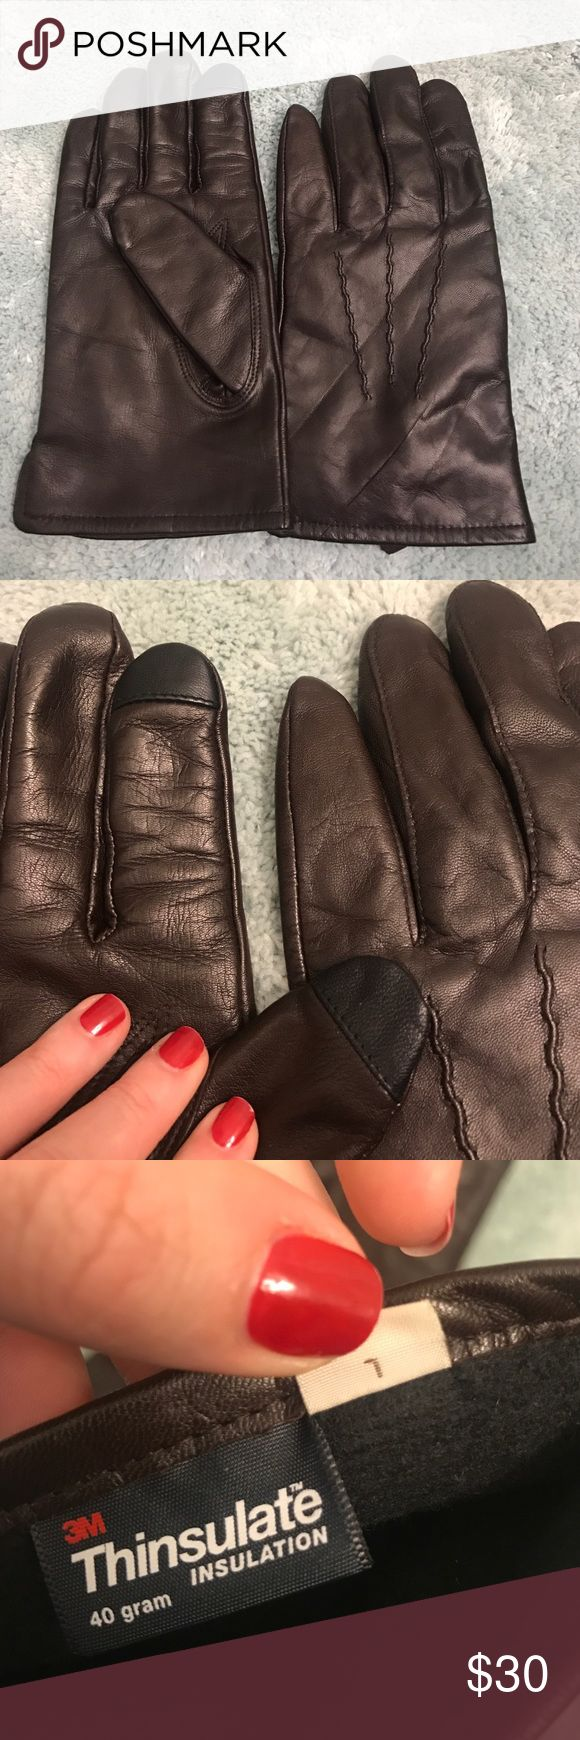 Womens leather gloves thinsulate lining - Men S Brown Leather Gloves With Tech Touch